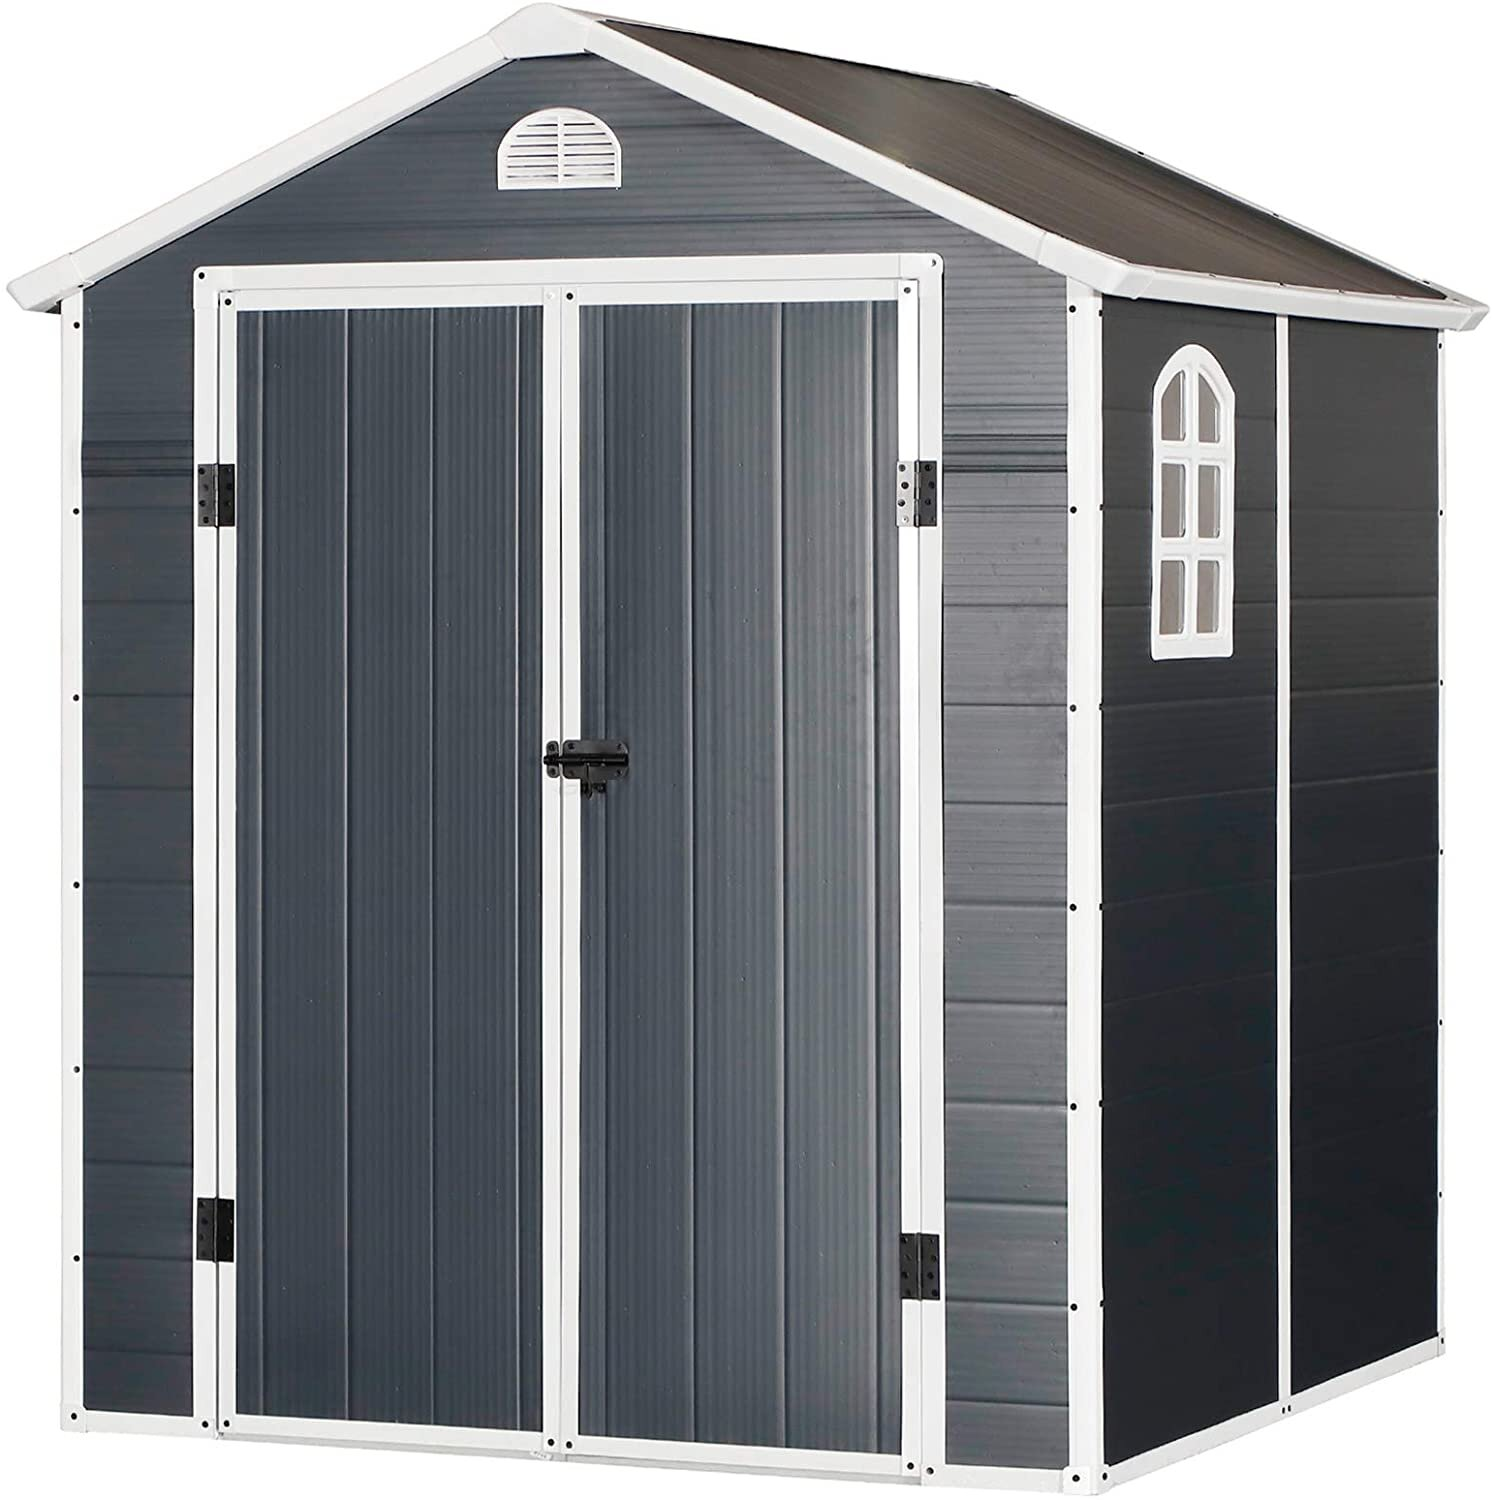 Outsunny 226x190cm Garden Shed Outdoor Storage 2 Doors Latch Air Vent Window Grey Mh Star